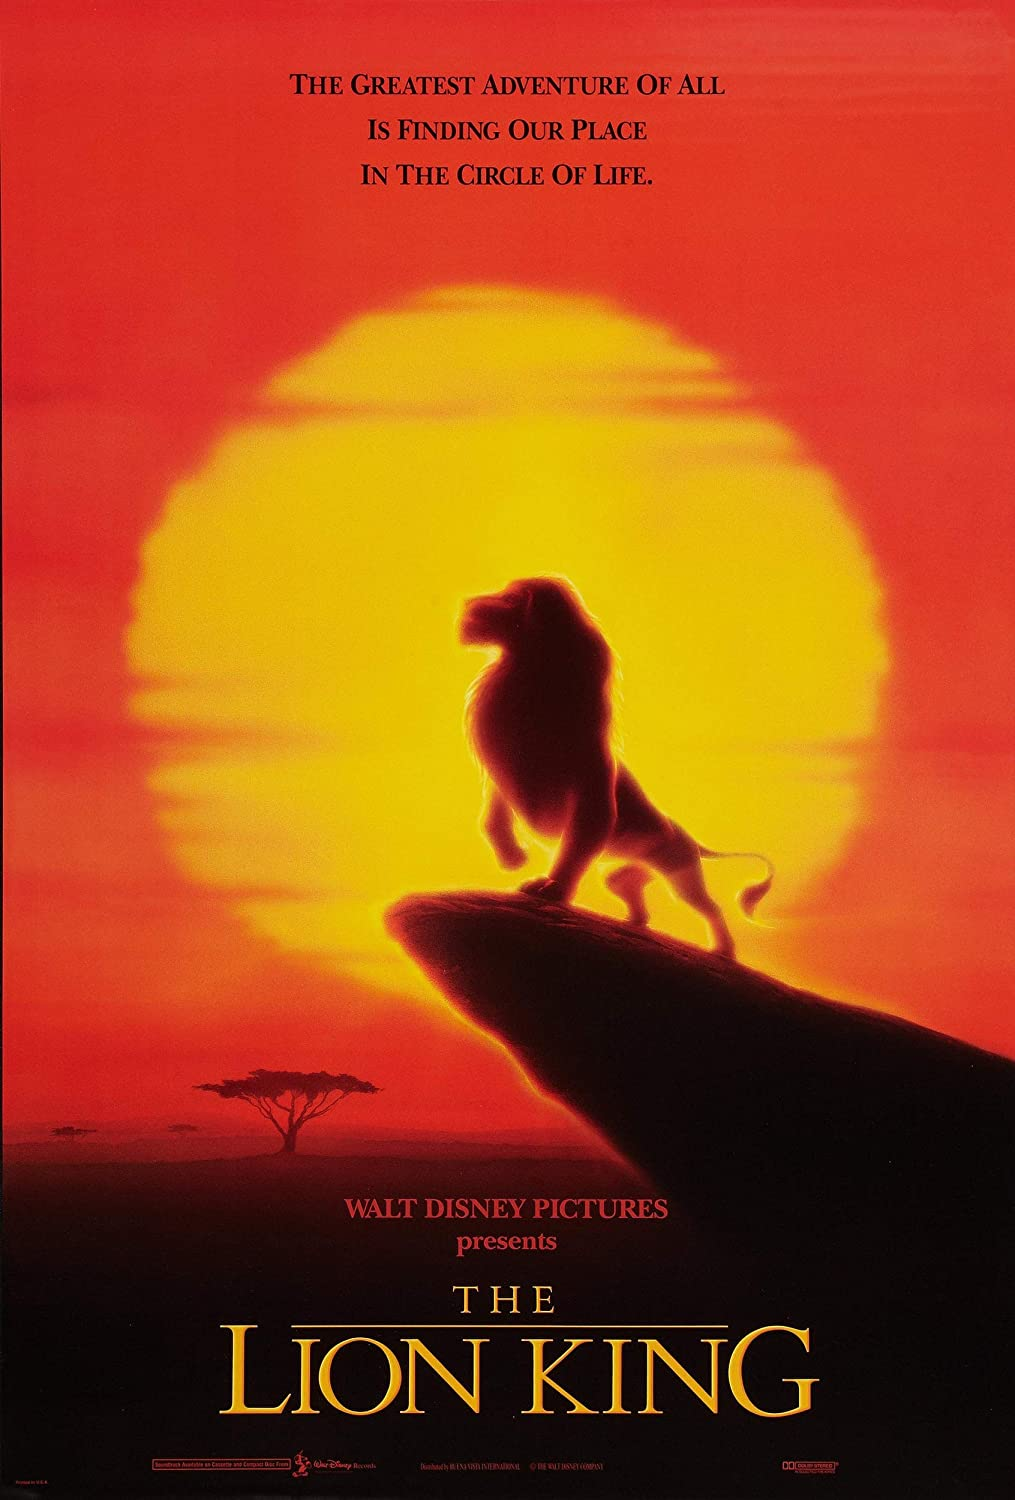 The Lion King Sunset Poster Wall Art Print Gift Poster Canvas Printing Wall Decor - 8.5